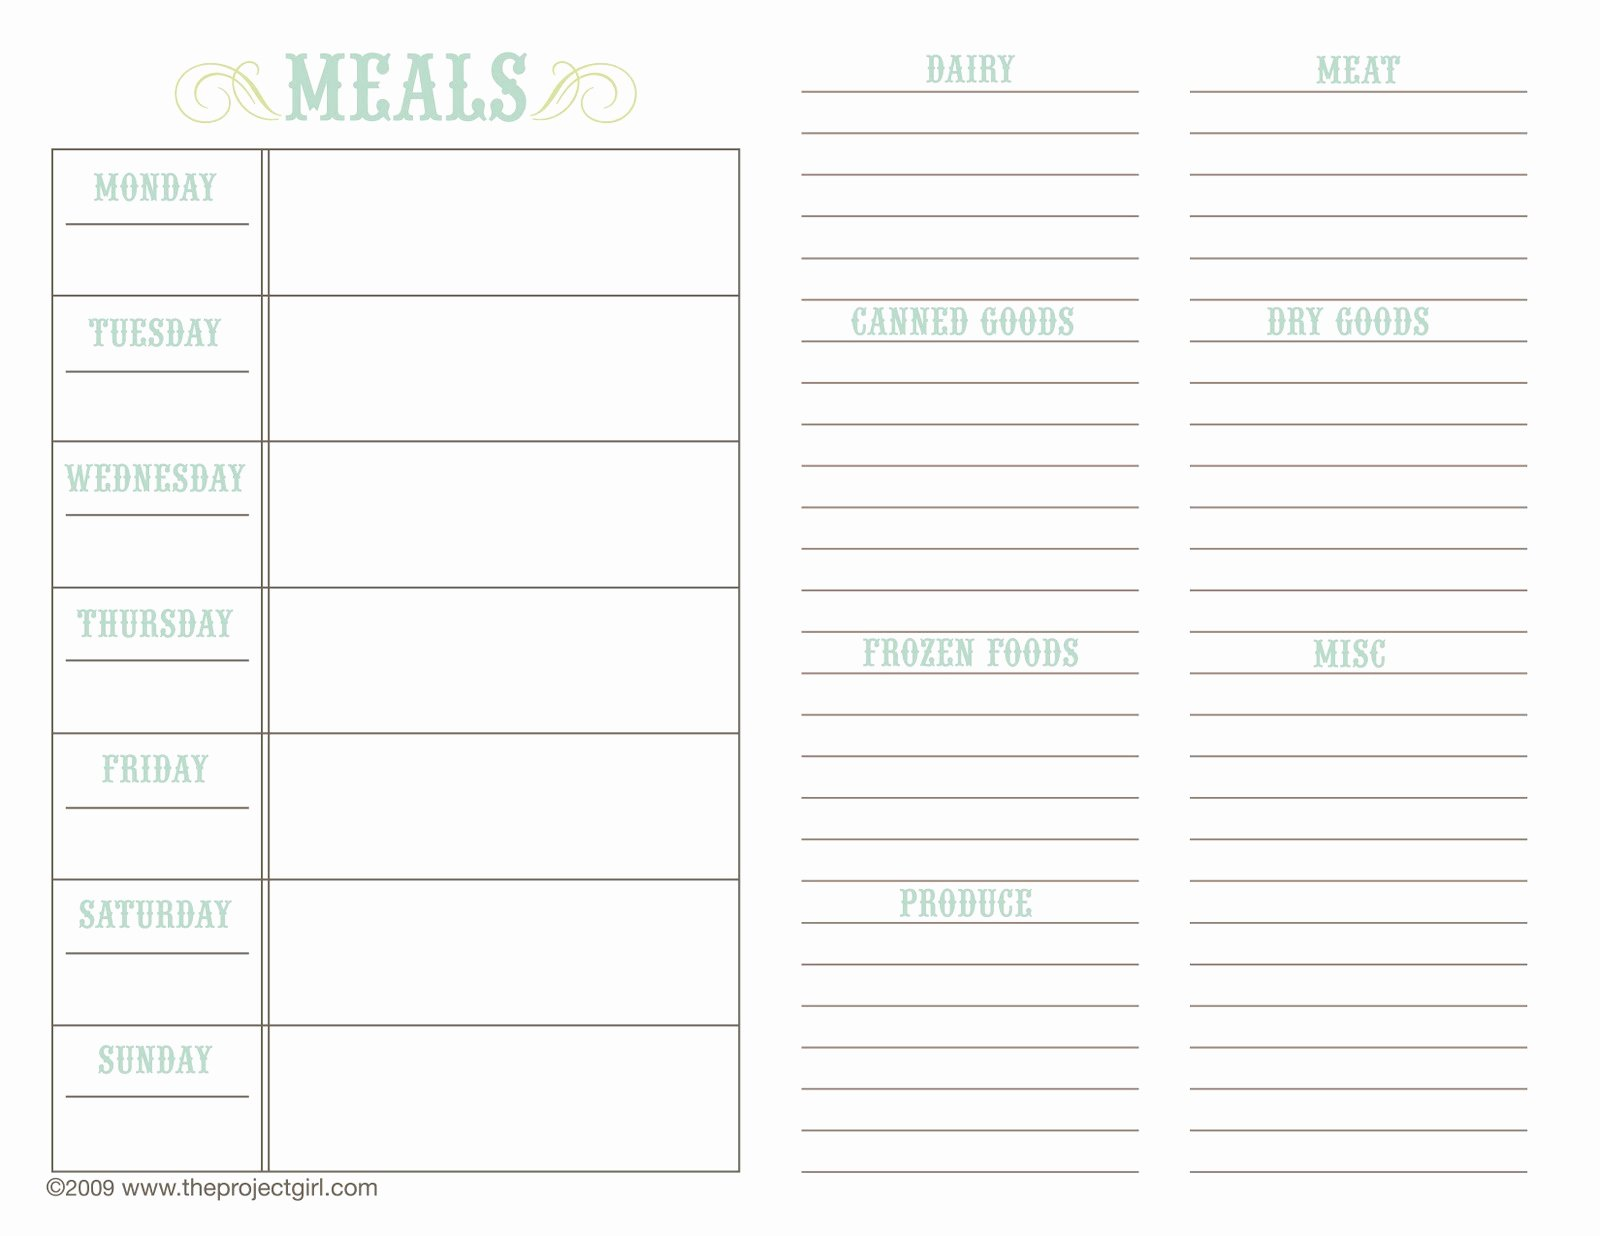 Meal Plan Template Free Awesome Meal Planner Template